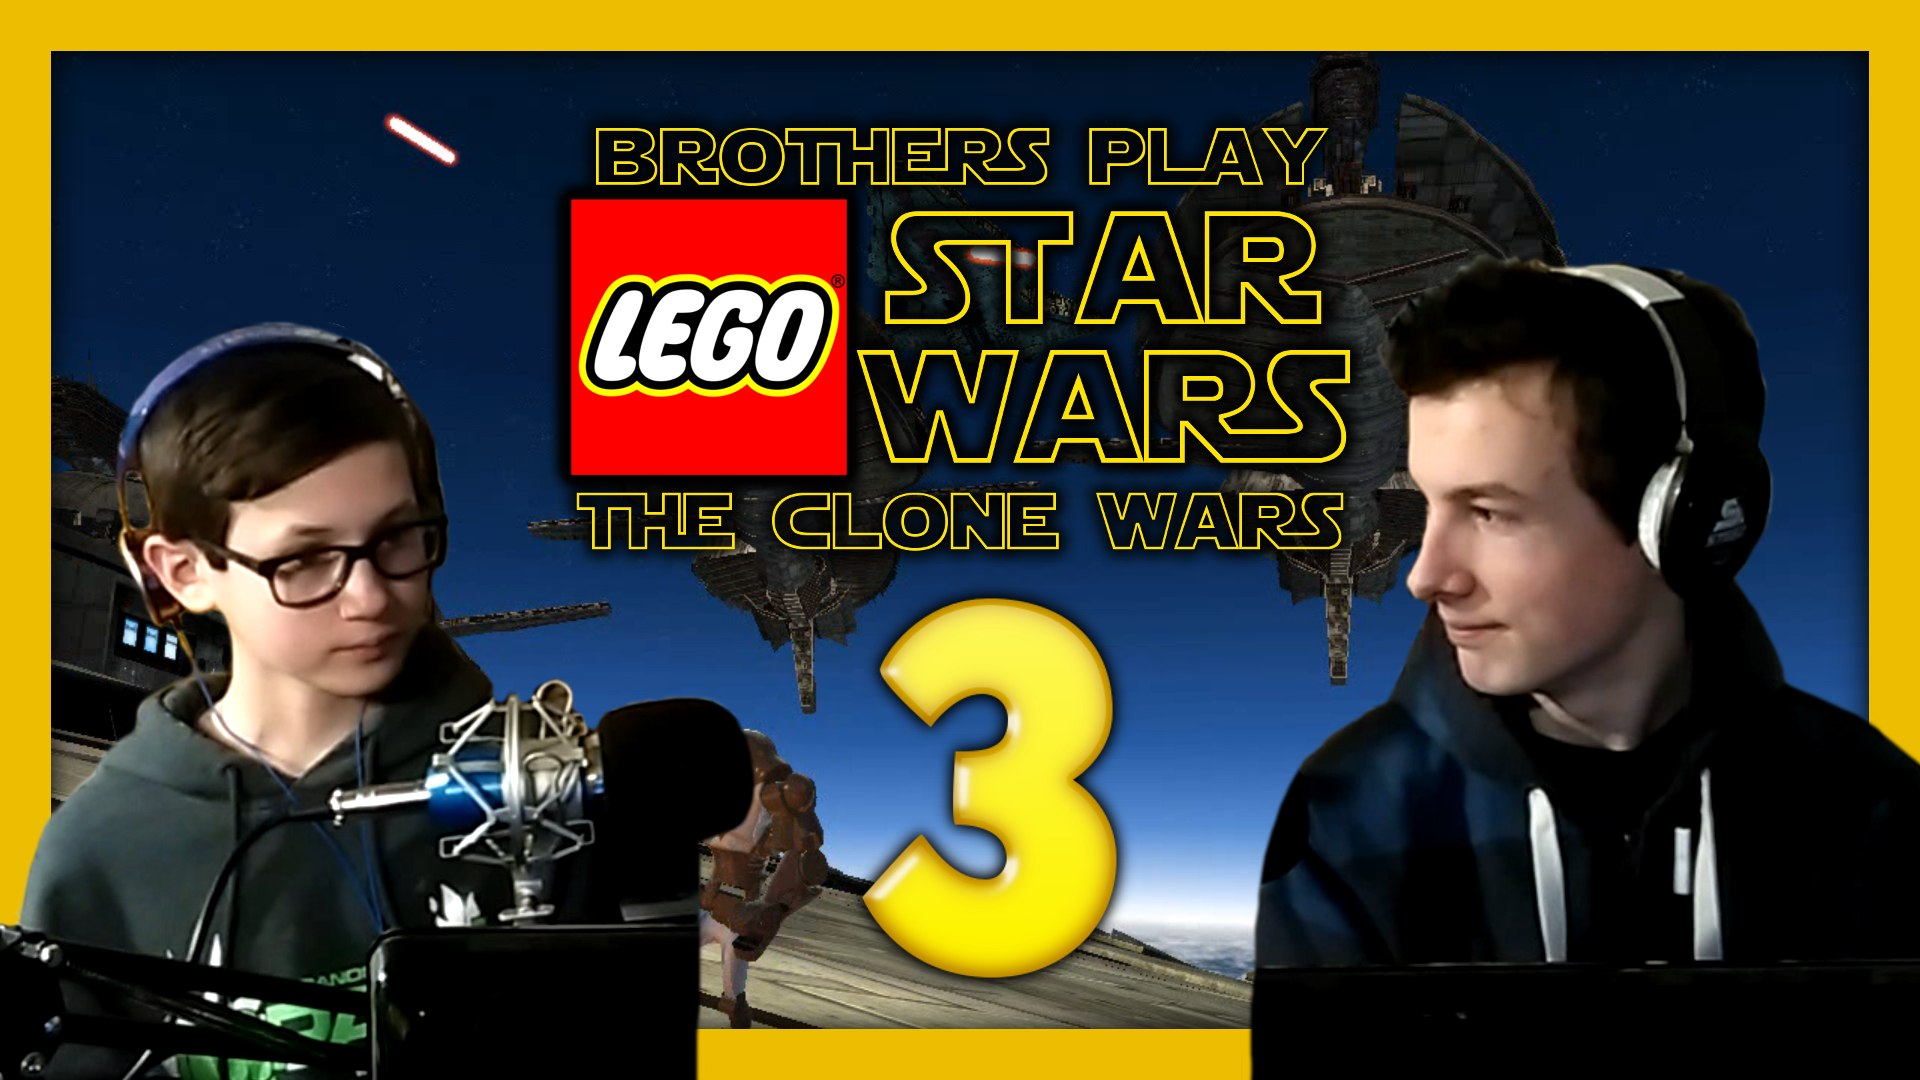 'Jedi Crash!' Brothers Play LEGO Star Wars III: The Clone Wars Episode 3